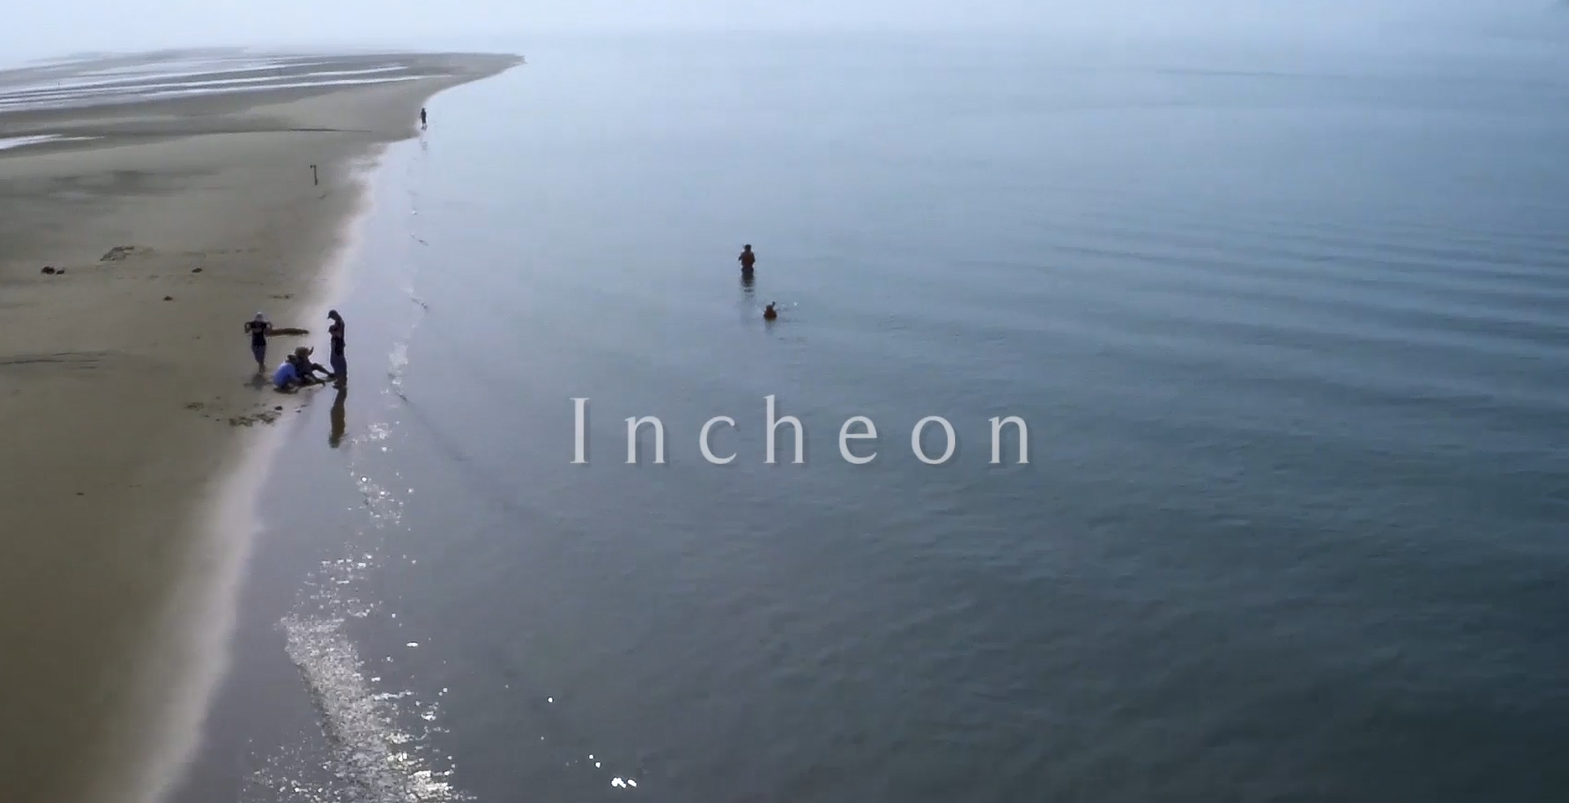 01. Incheon_Korean(Discover Incheon)-마라도의 썸네일